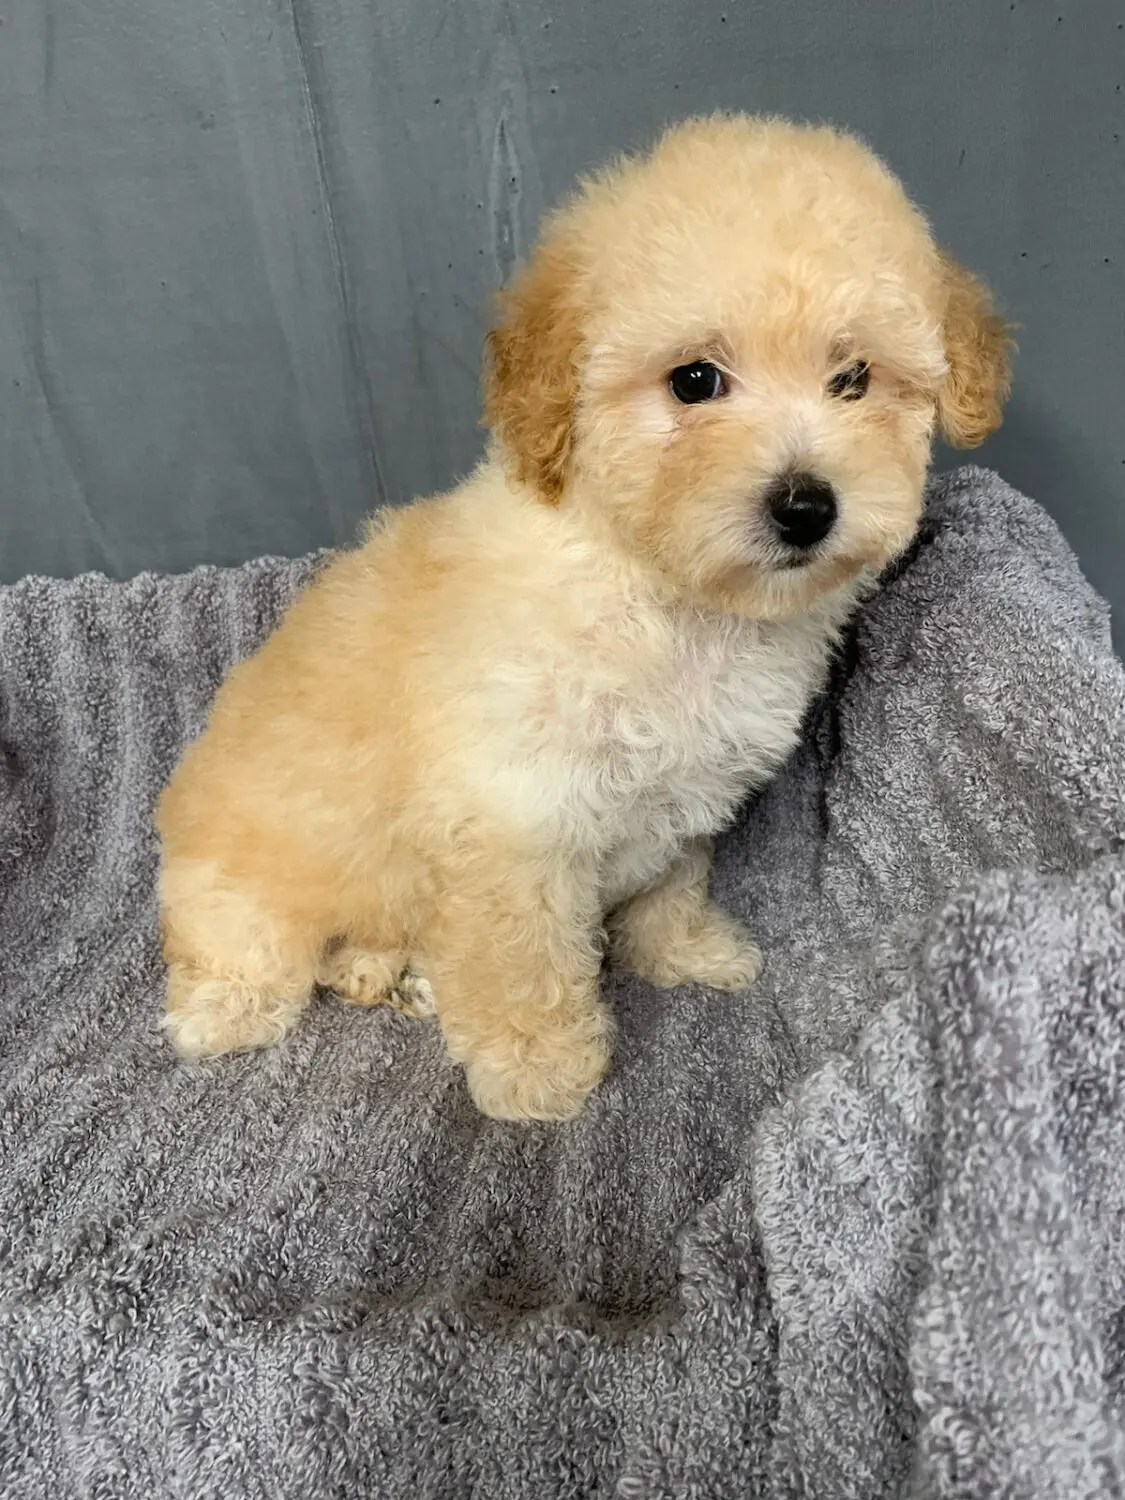 Poodle (Toy) Puppy for Sale near Virginia, RICHMOND, USA